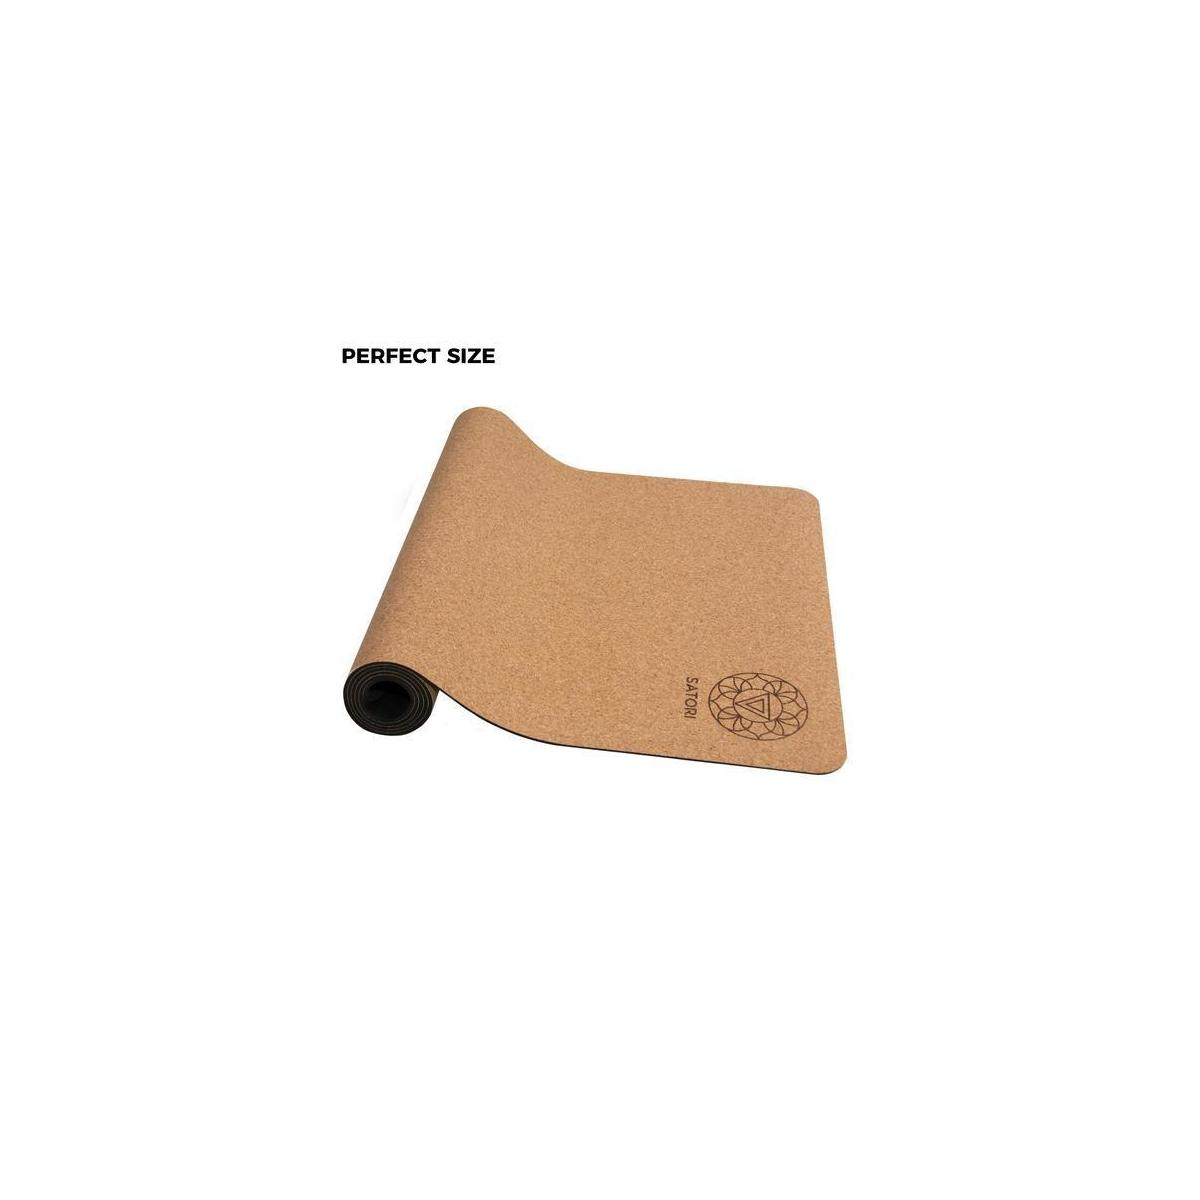 """SatoriConcept Cork Yoga Mat - 100% Eco Friendly Cork & Rubber, Lightweight with Perfect Size (72"""" x 24"""") and 4mm Thick, Non Slip, Sweat-Resistant, Innovative Exercise Mat for Hot Yoga, Outdoor Fitness"""